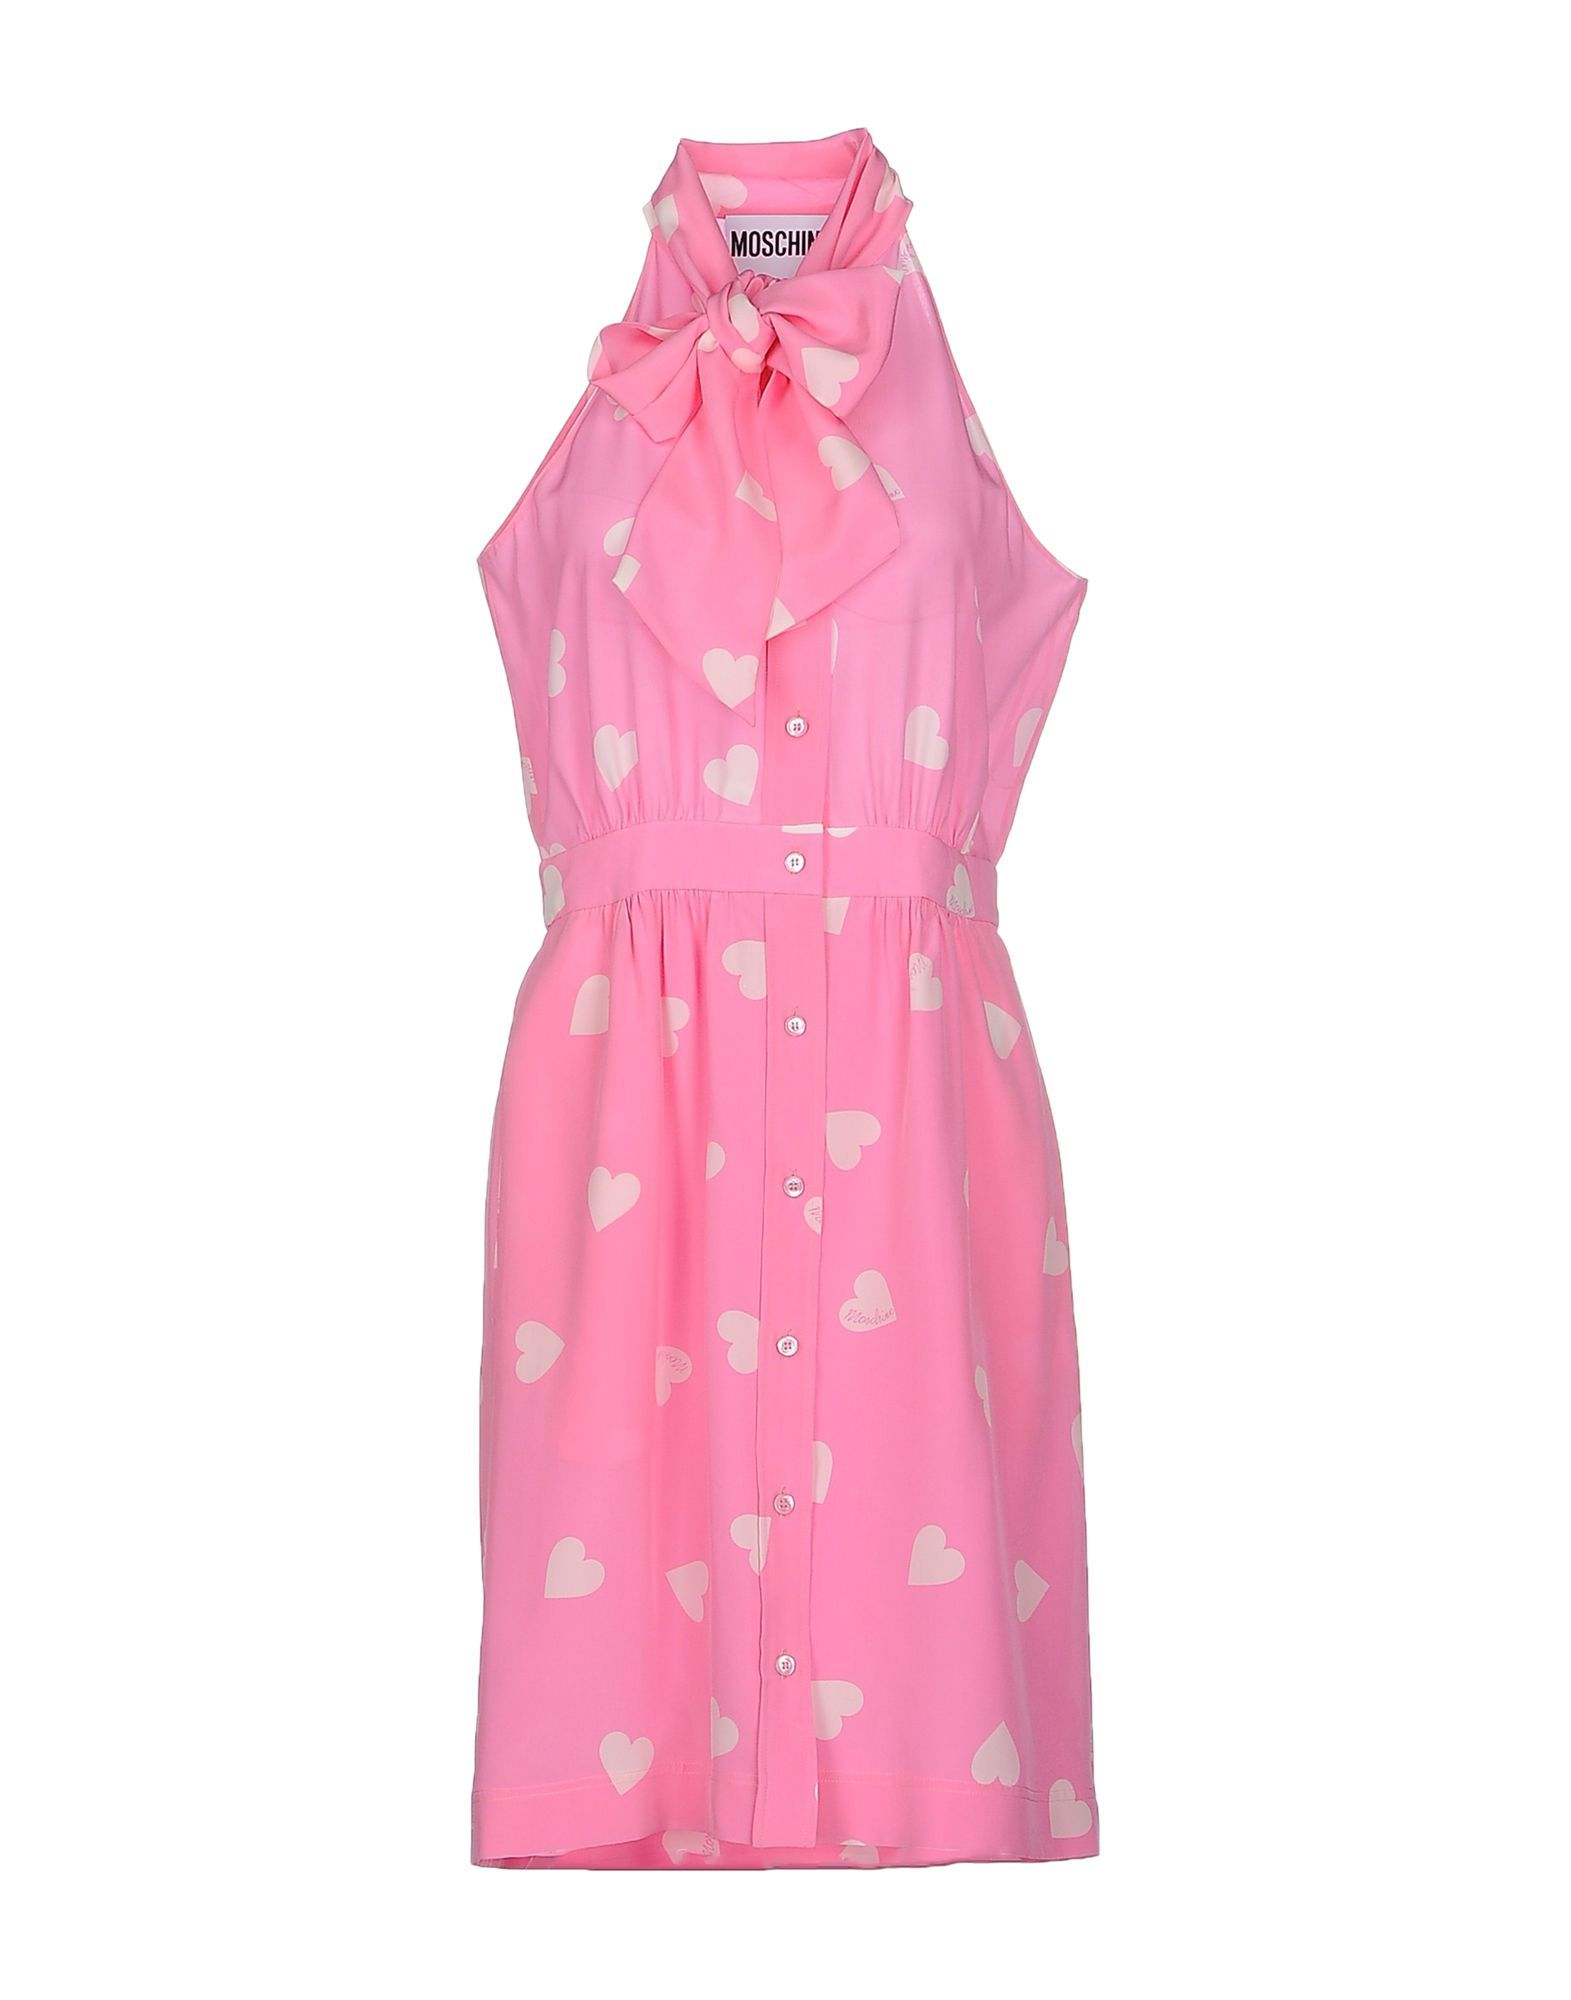 Formal pink dresses for women  Moschino Couture Formal Dress  Women Moschino Couture Formal